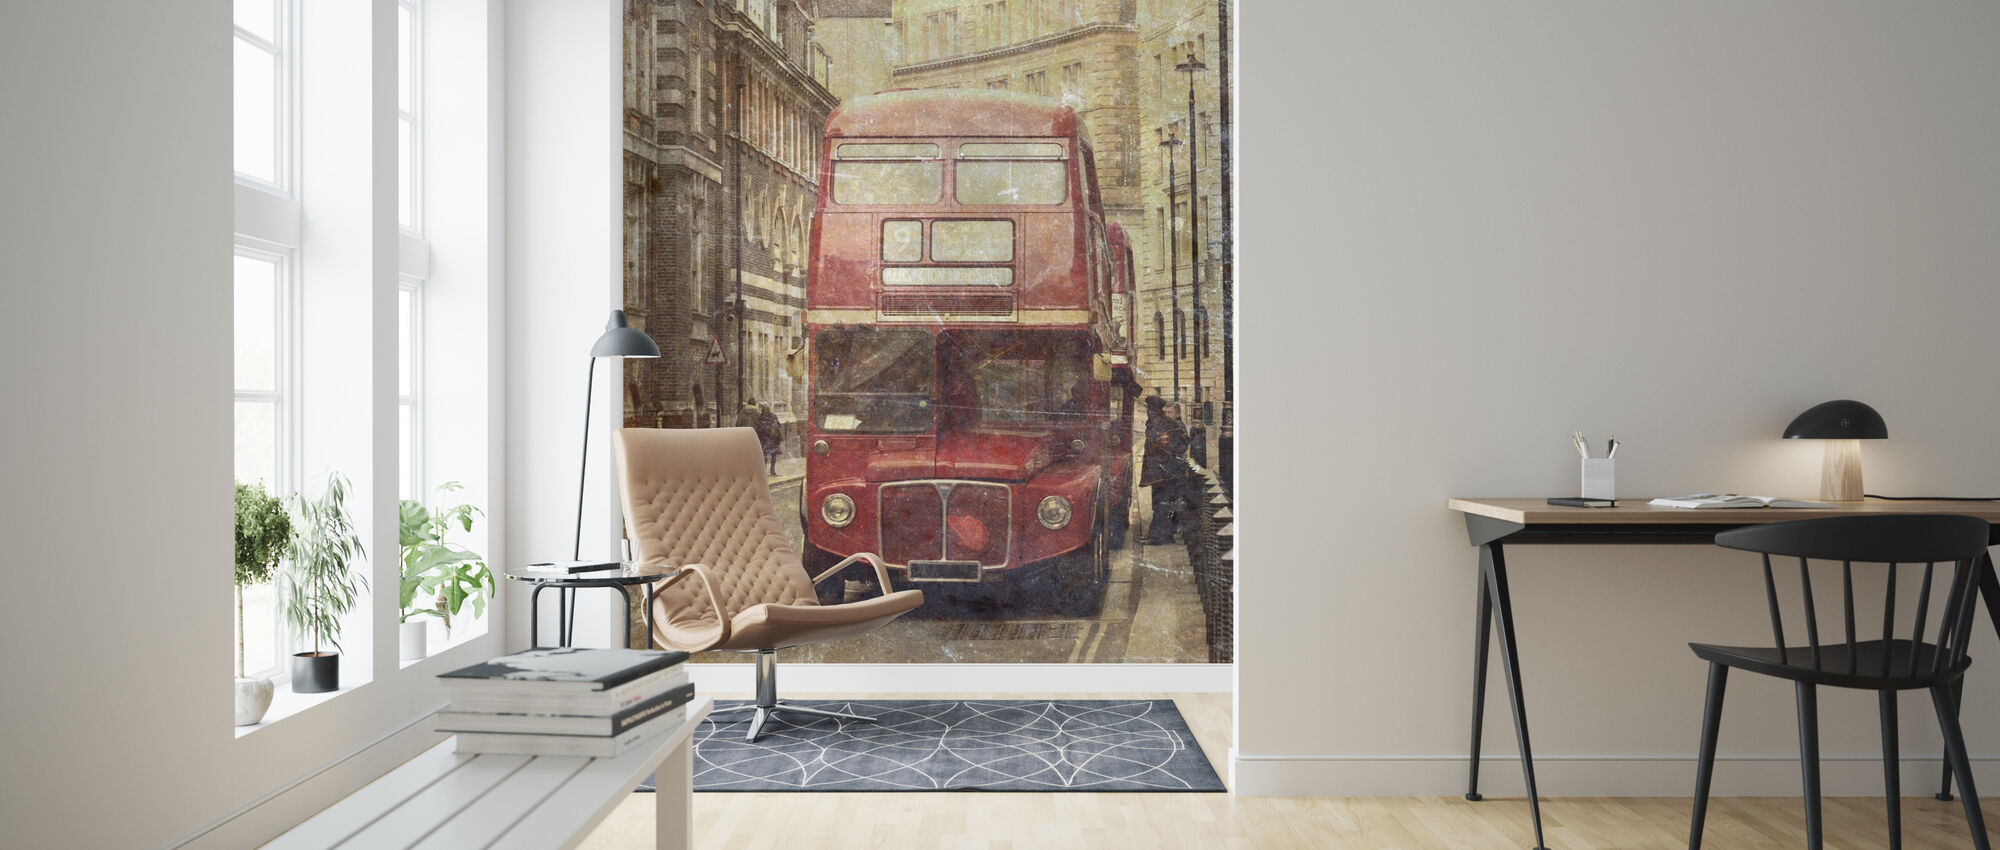 London Bus Route 9 - Wallpaper - Living Room